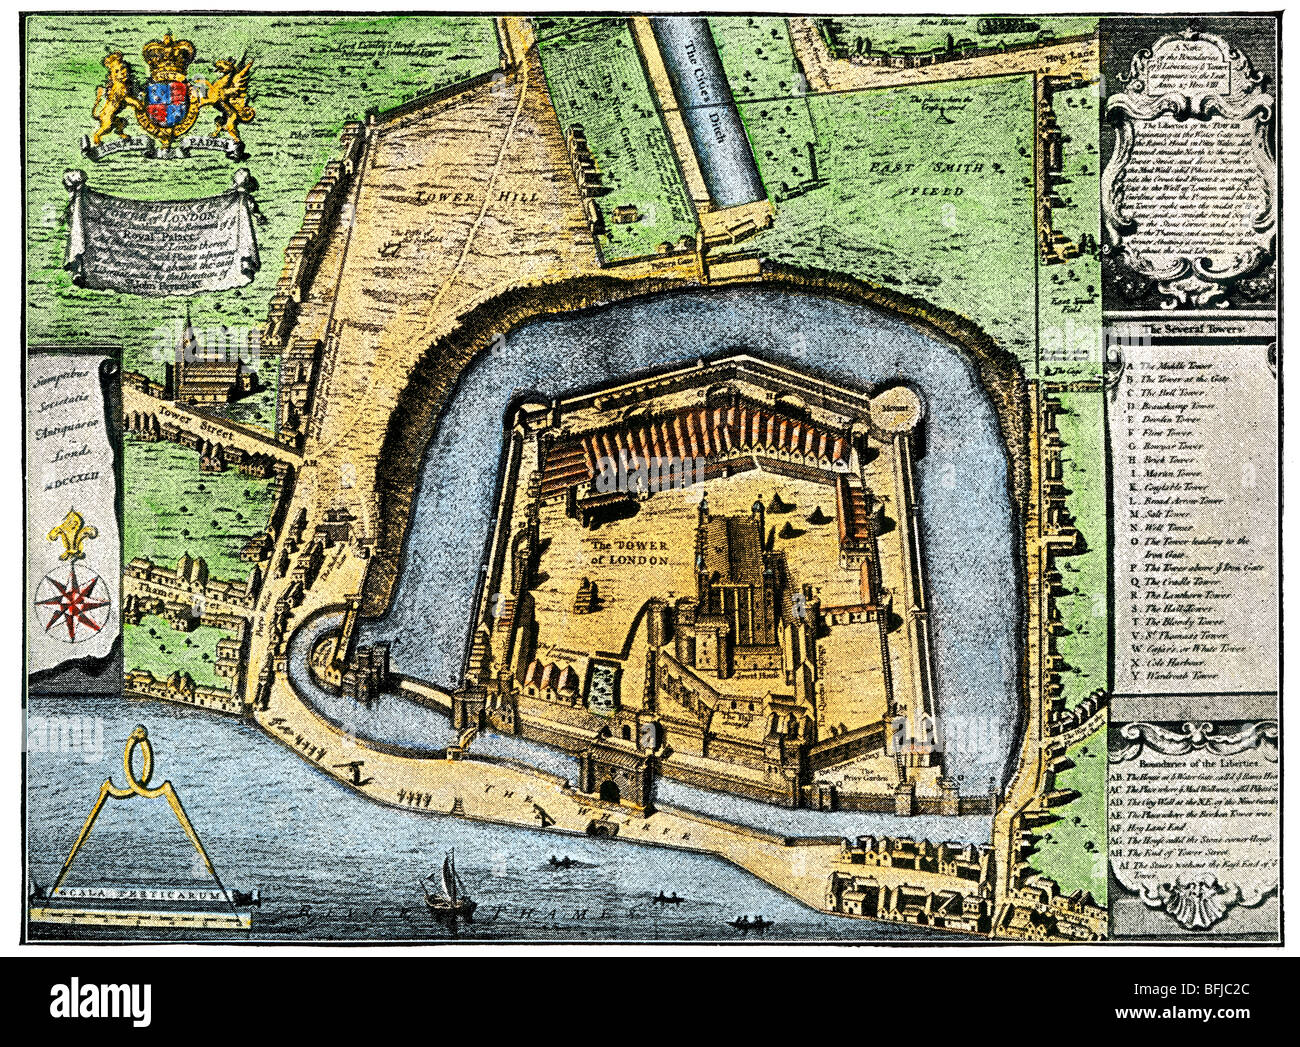 Tower of London in Elizabethan England. Hand-colored halftone of an illustration - Stock Image